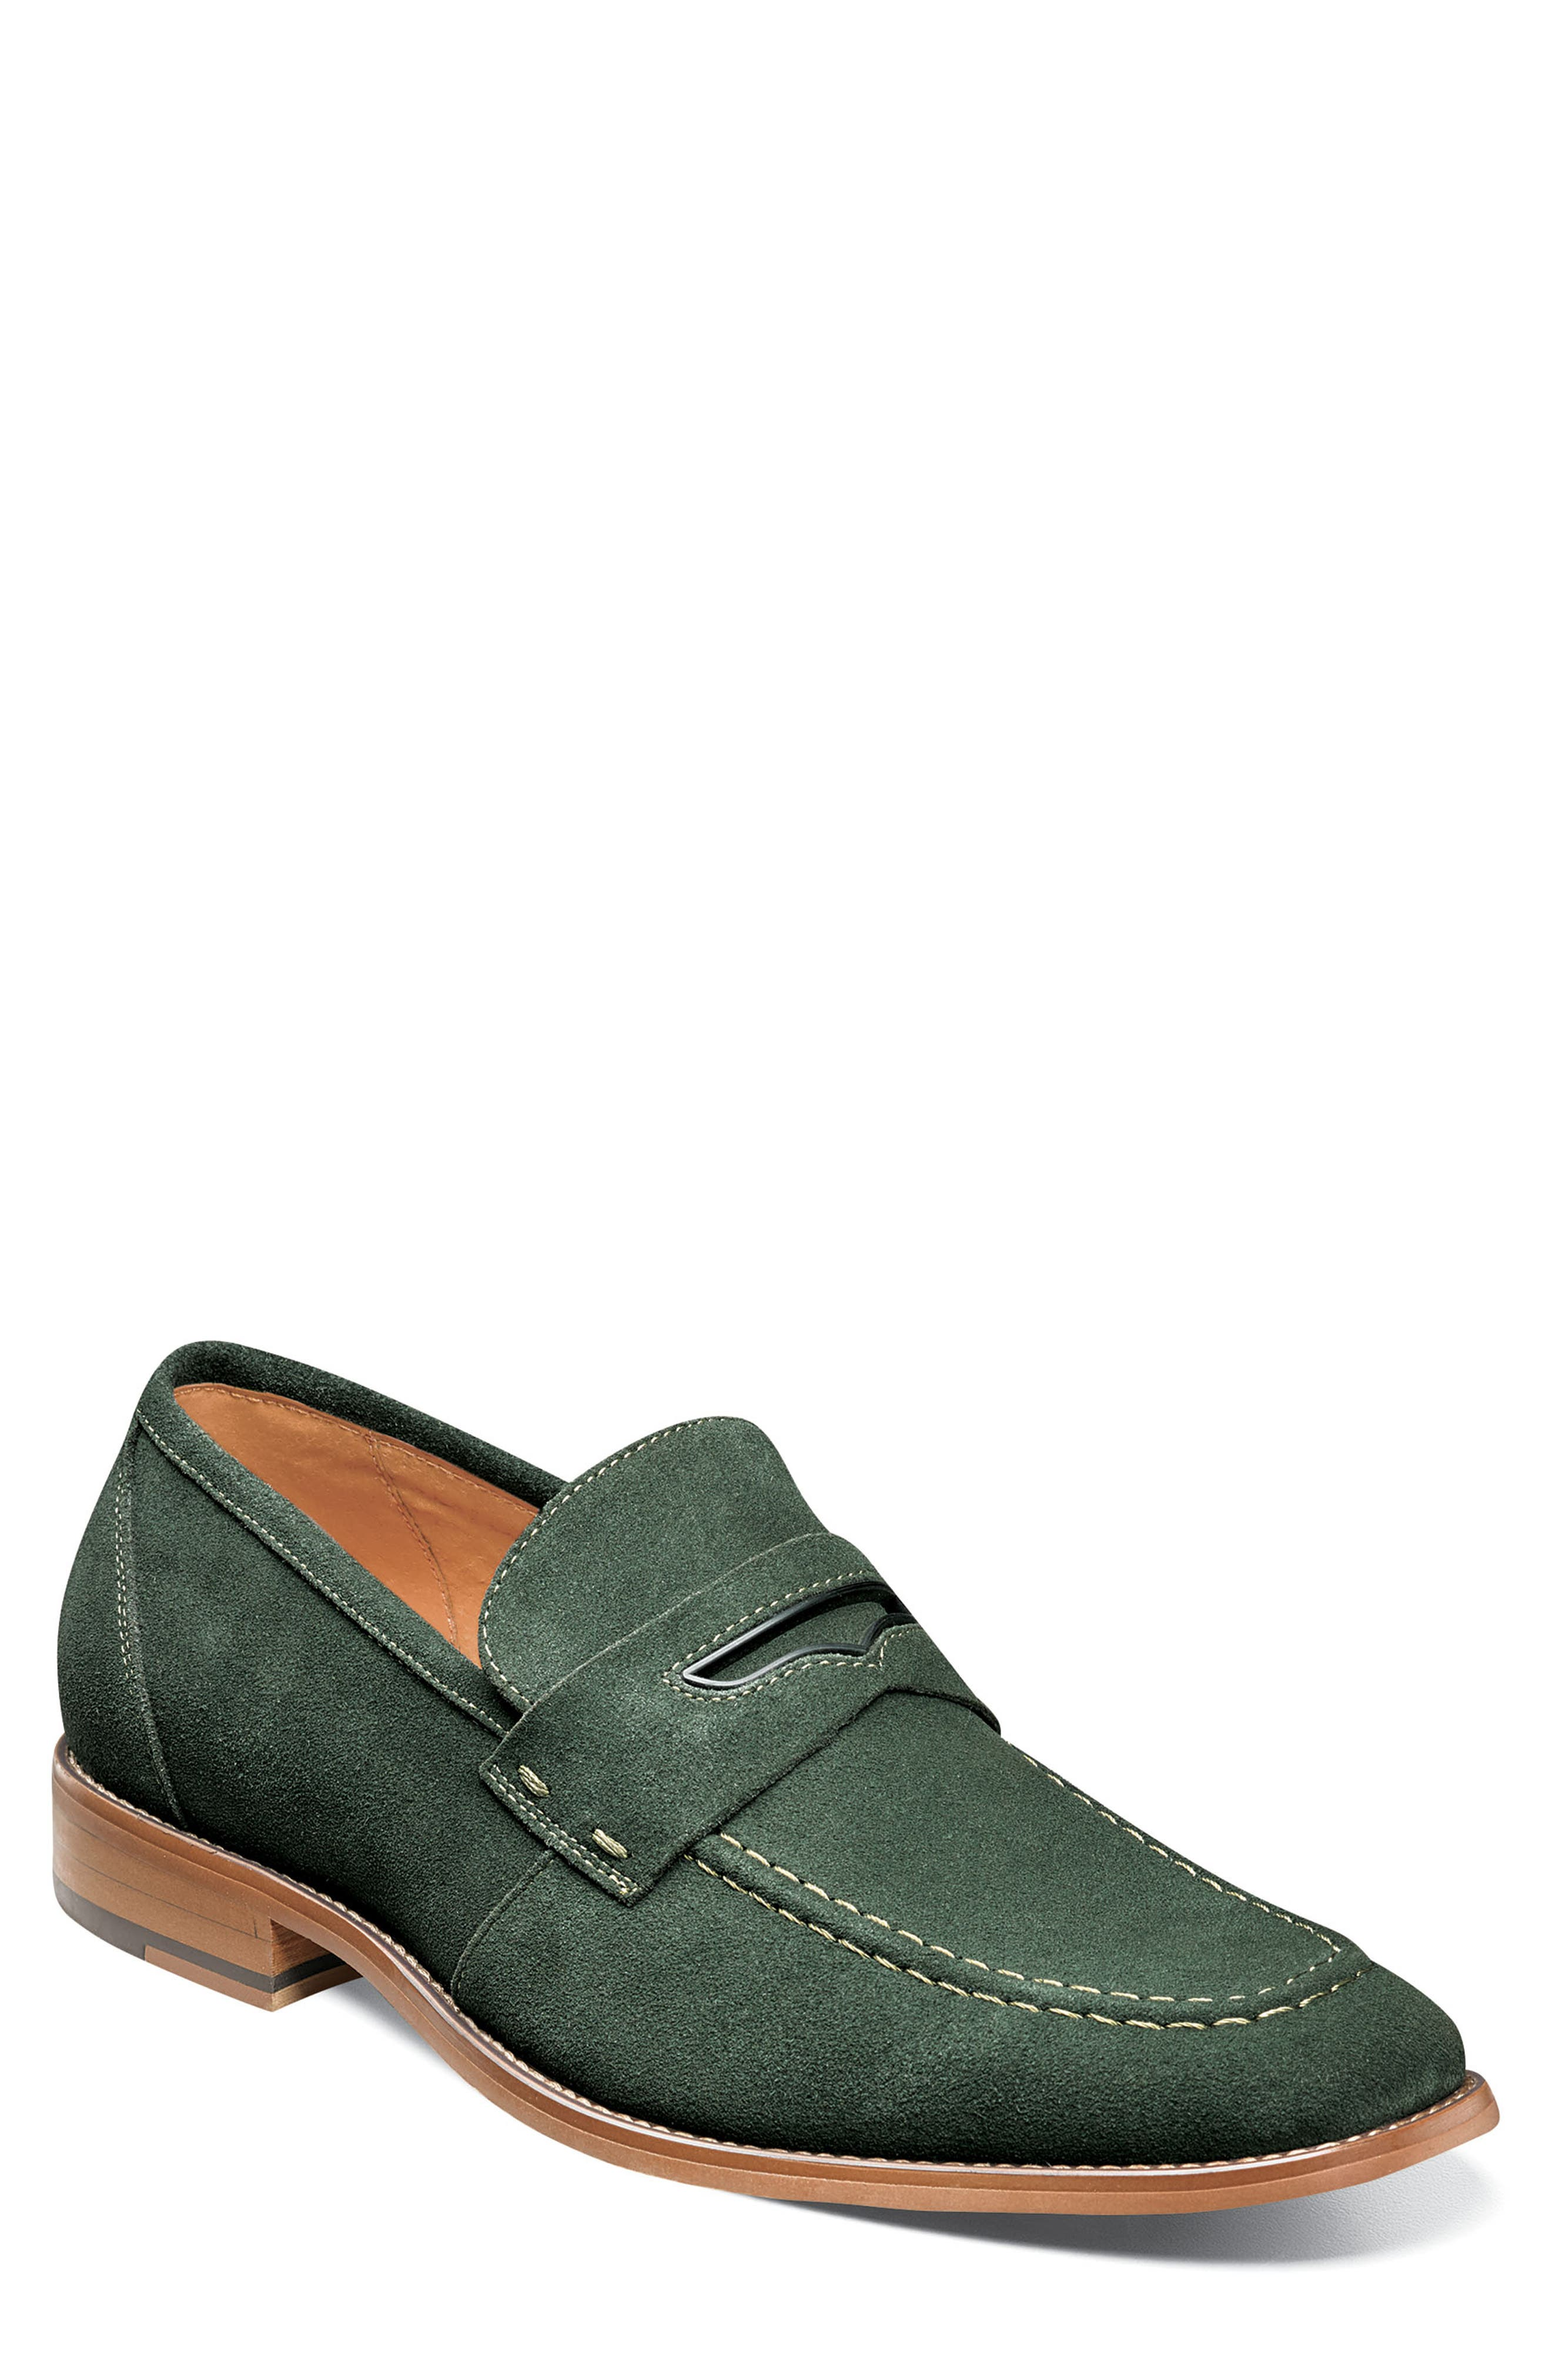 Colfax Apron Toe Penny Loafer,                             Main thumbnail 1, color,                             DARK GREEN SUEDE